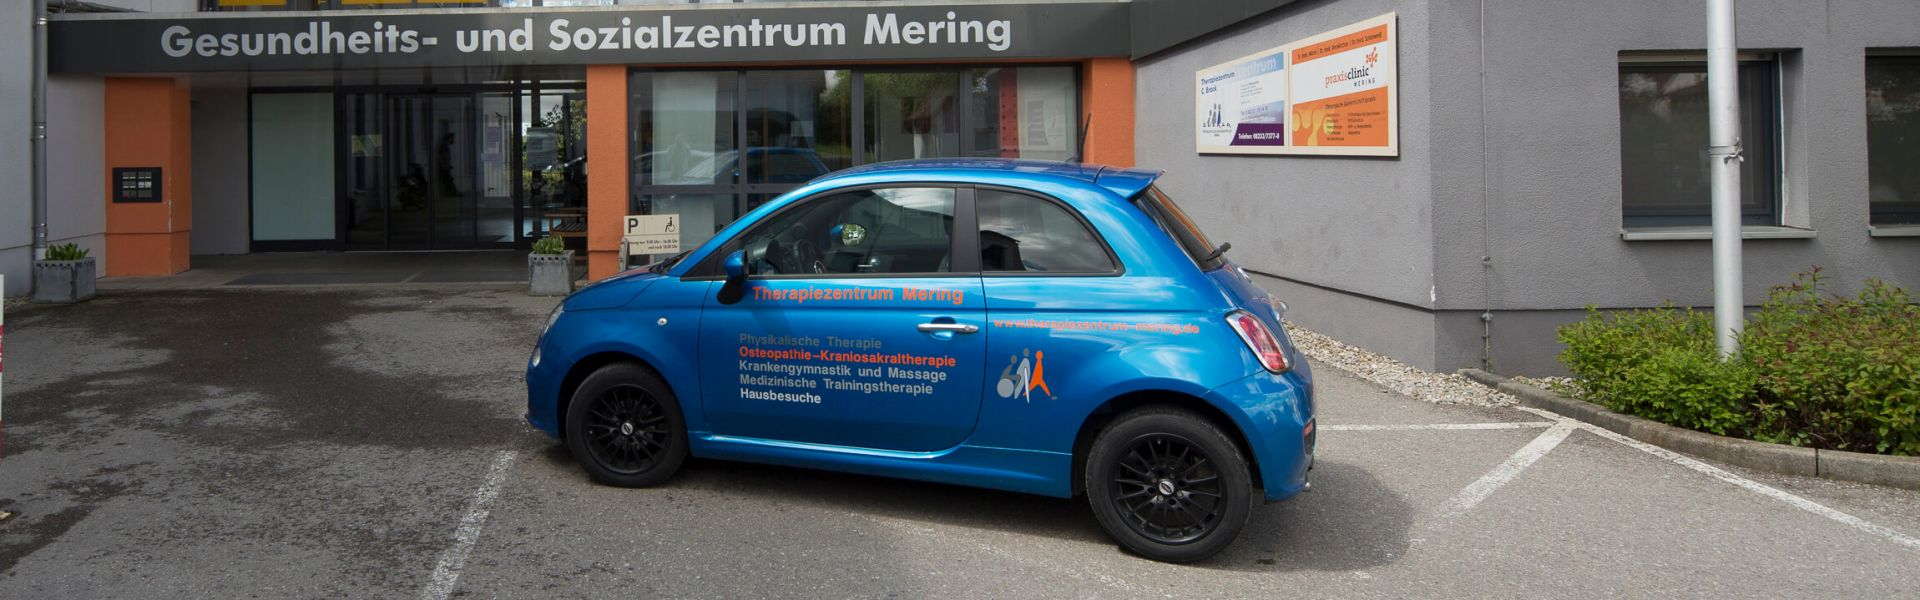 Therapiezentrum Mering - Therapiezentrum Mering - Inh. Christina Brack (Physiotherapeutin, Manualtherapeutin, Osteopathin)